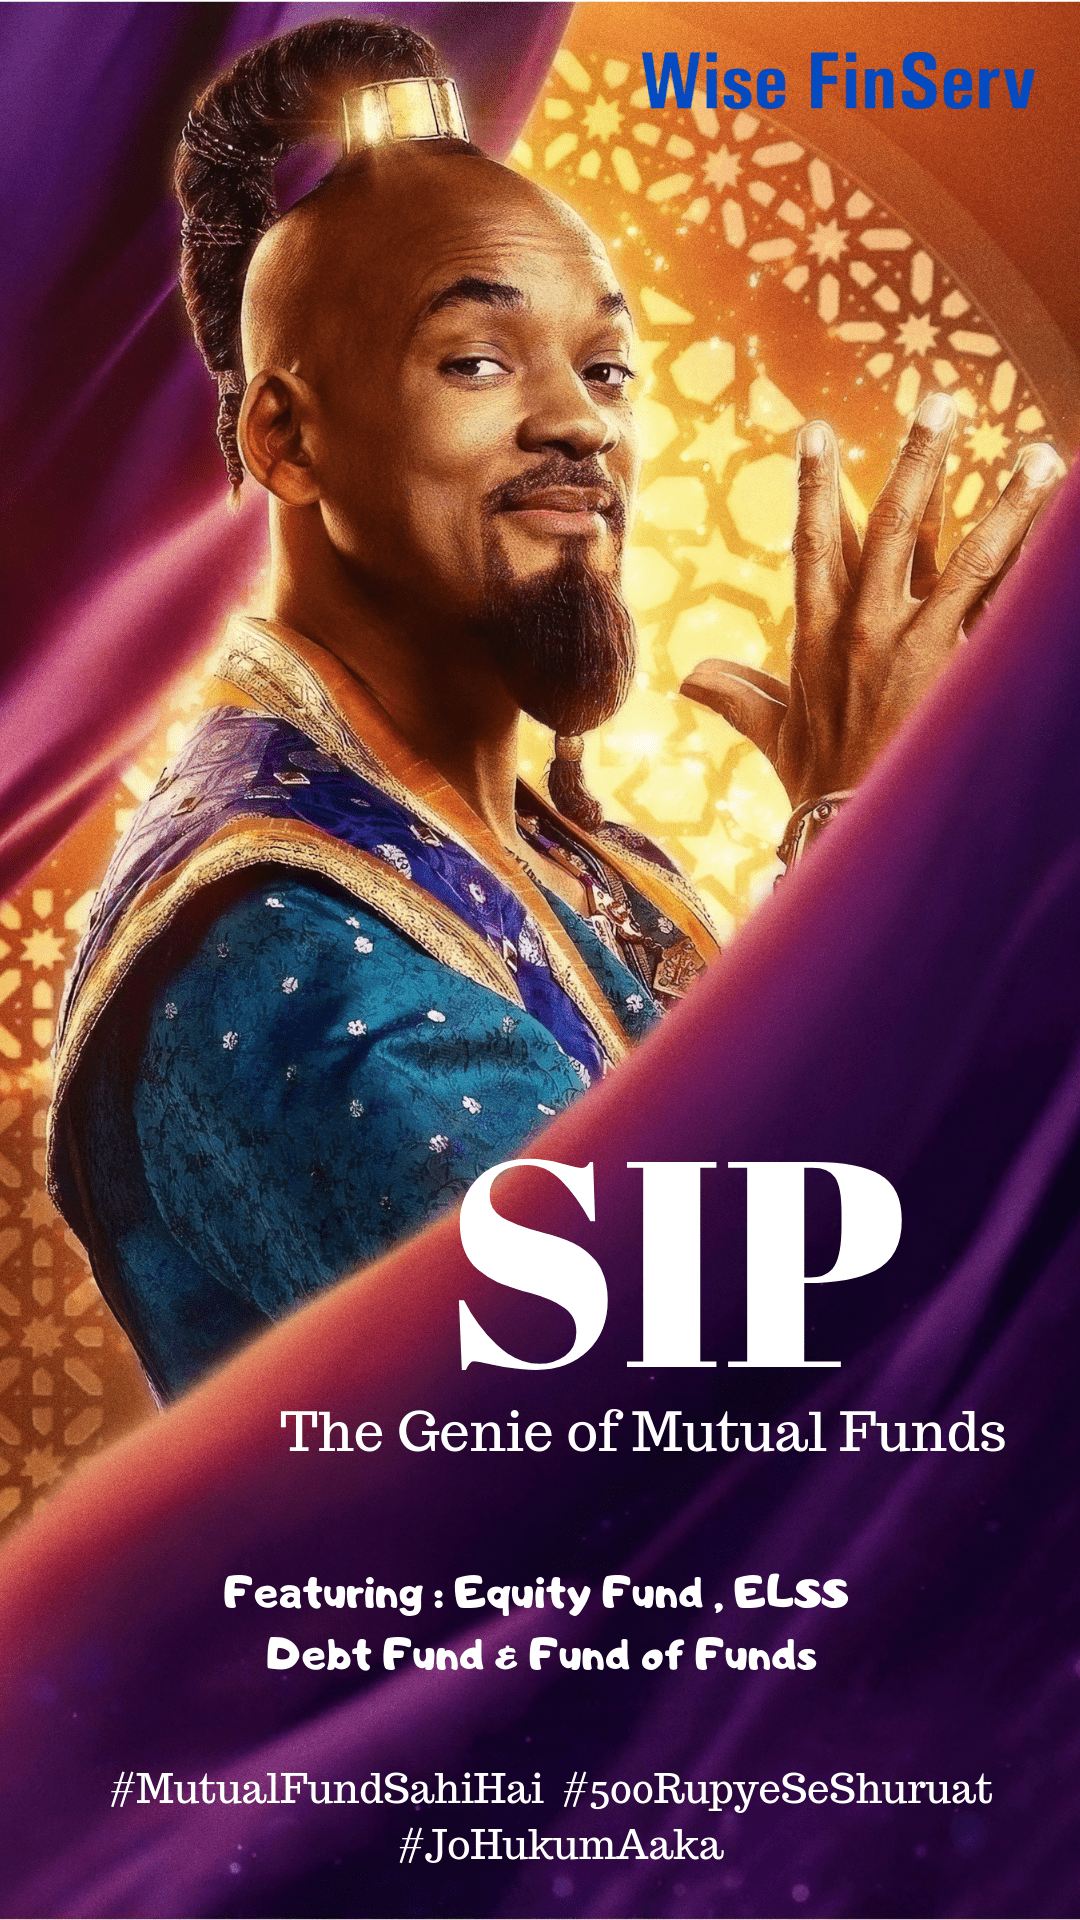 SIP the new Alladin ka Genie, fulfilling all your wishes